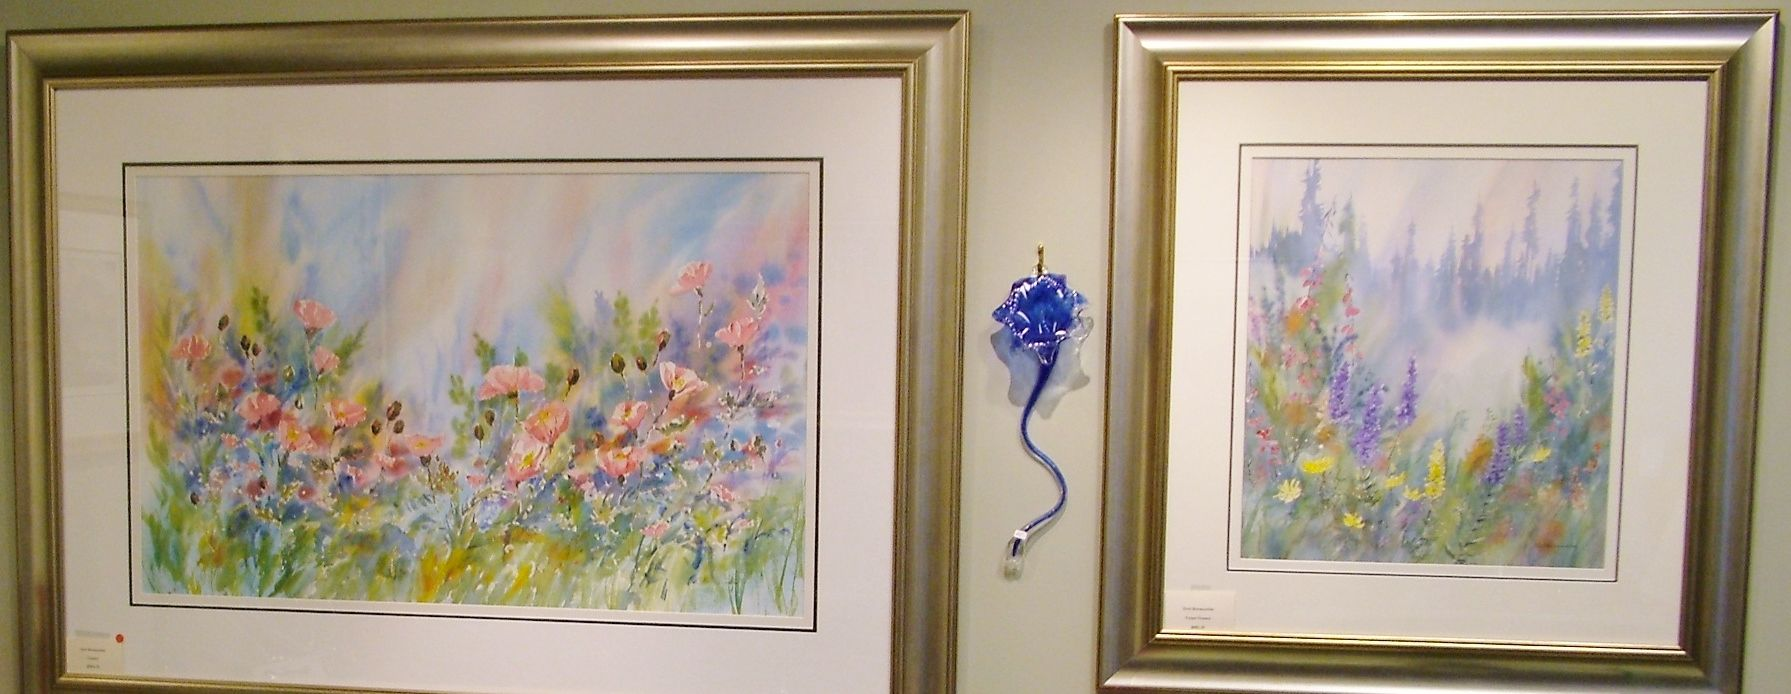 Watercolor florals by Errol of Canwest Art